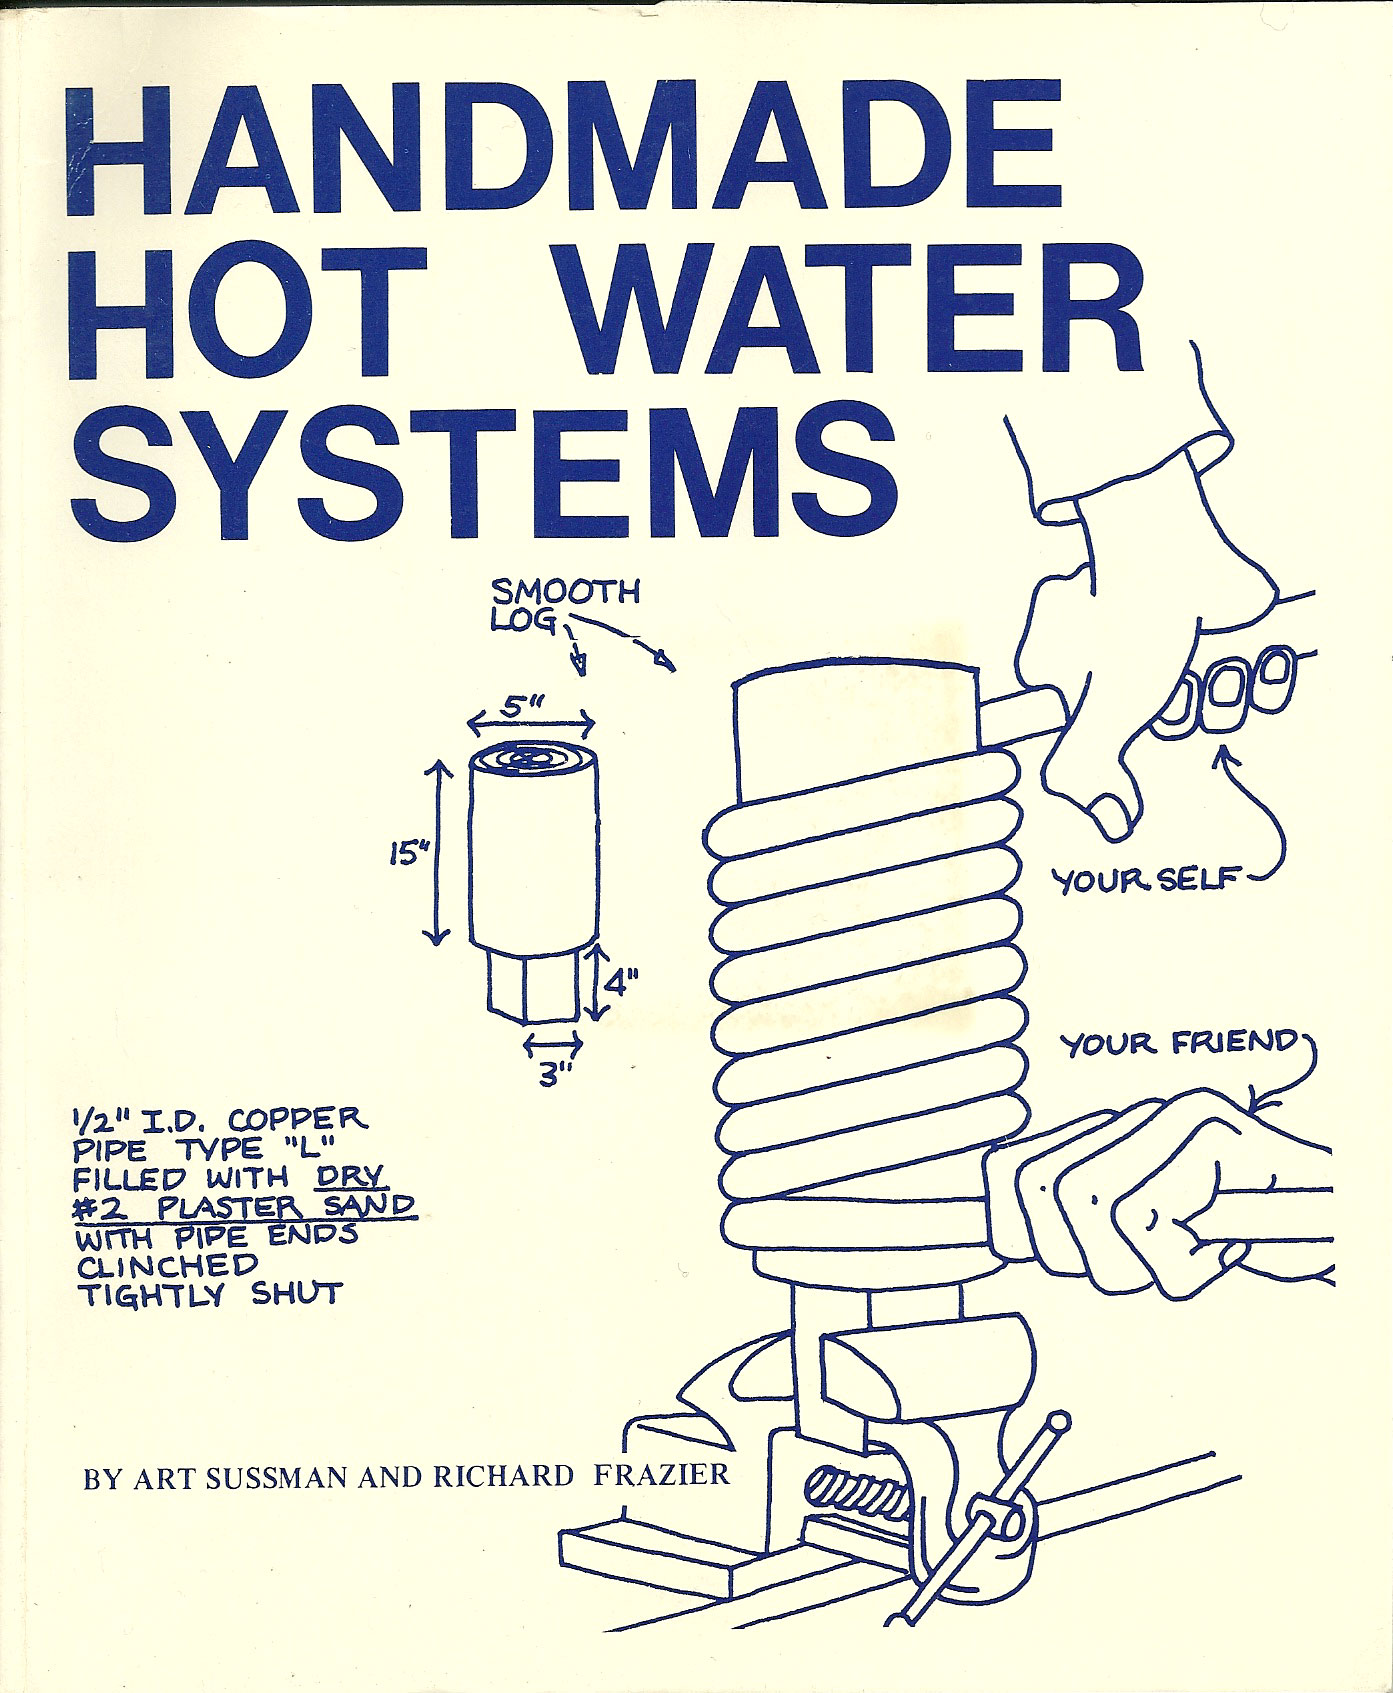 Hot and cold water systems - design properties, capacities, sizing and more